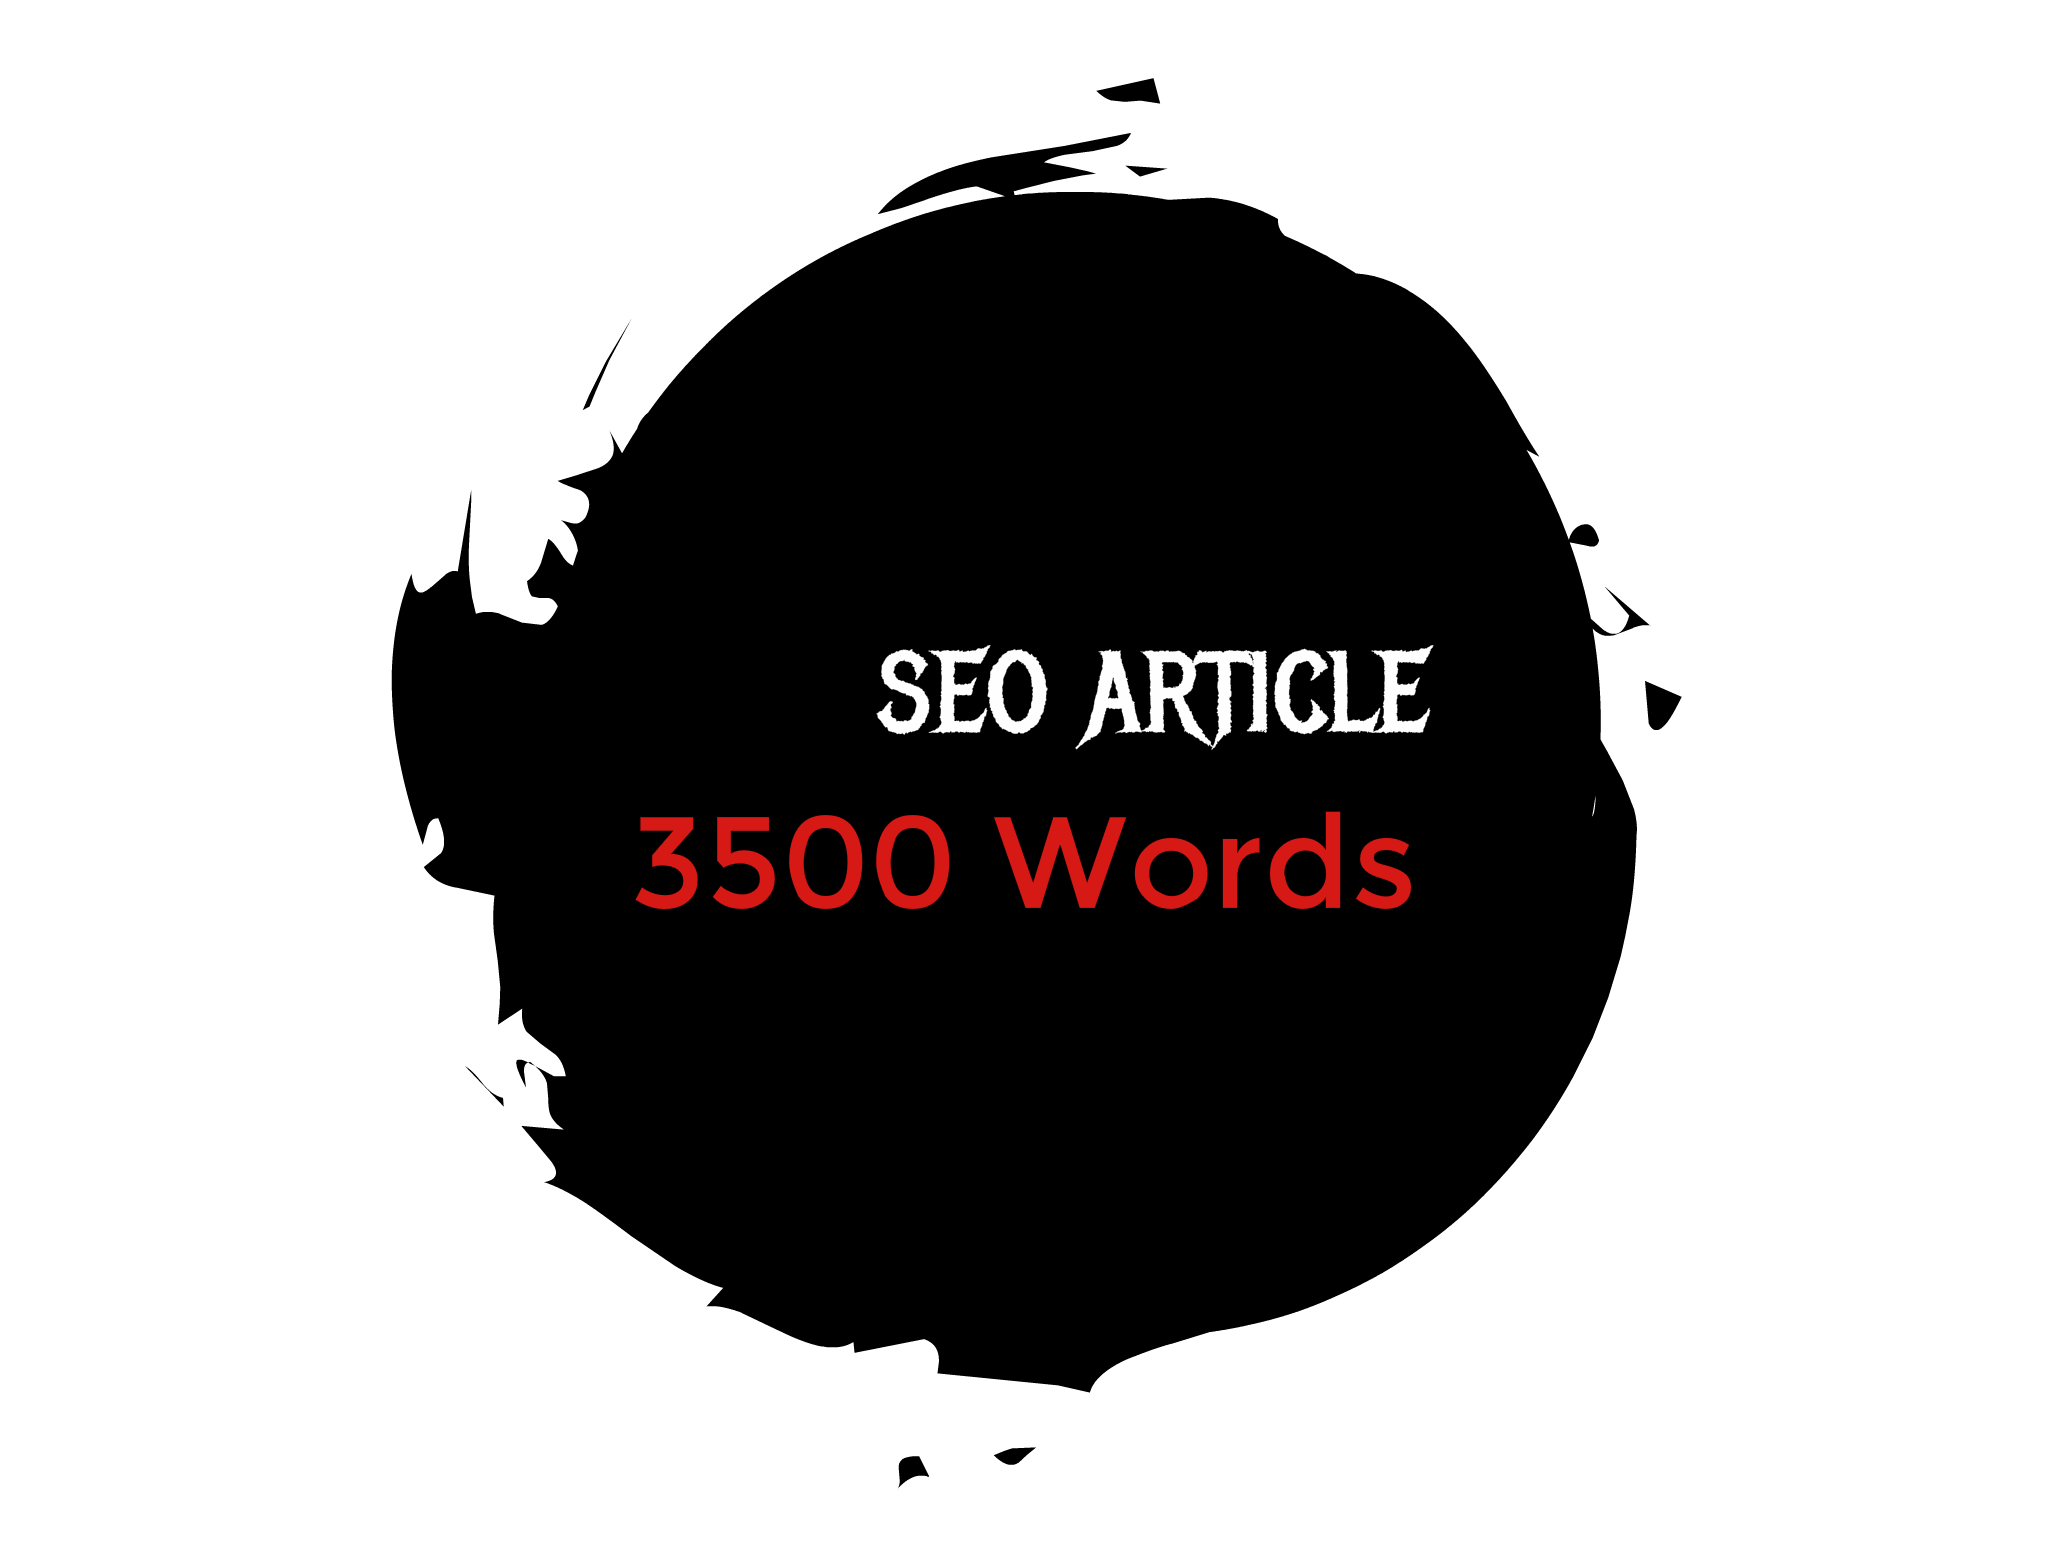 SEO Article 3500 Words